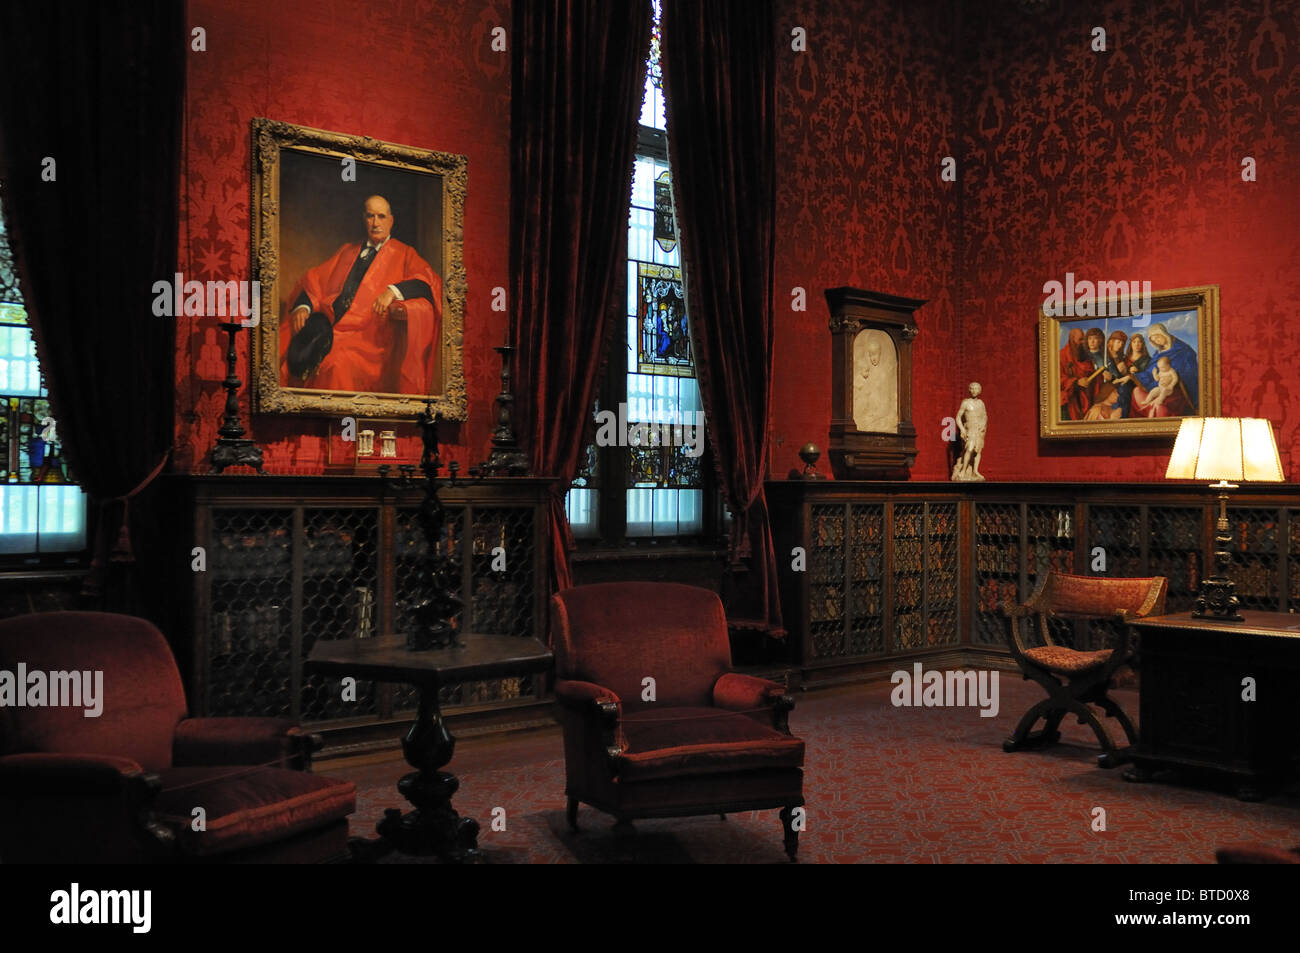 The West Room of the Morgan Library & Museum was used by financier Pierpont Morgan (1837-1913) as his study. - Stock Image